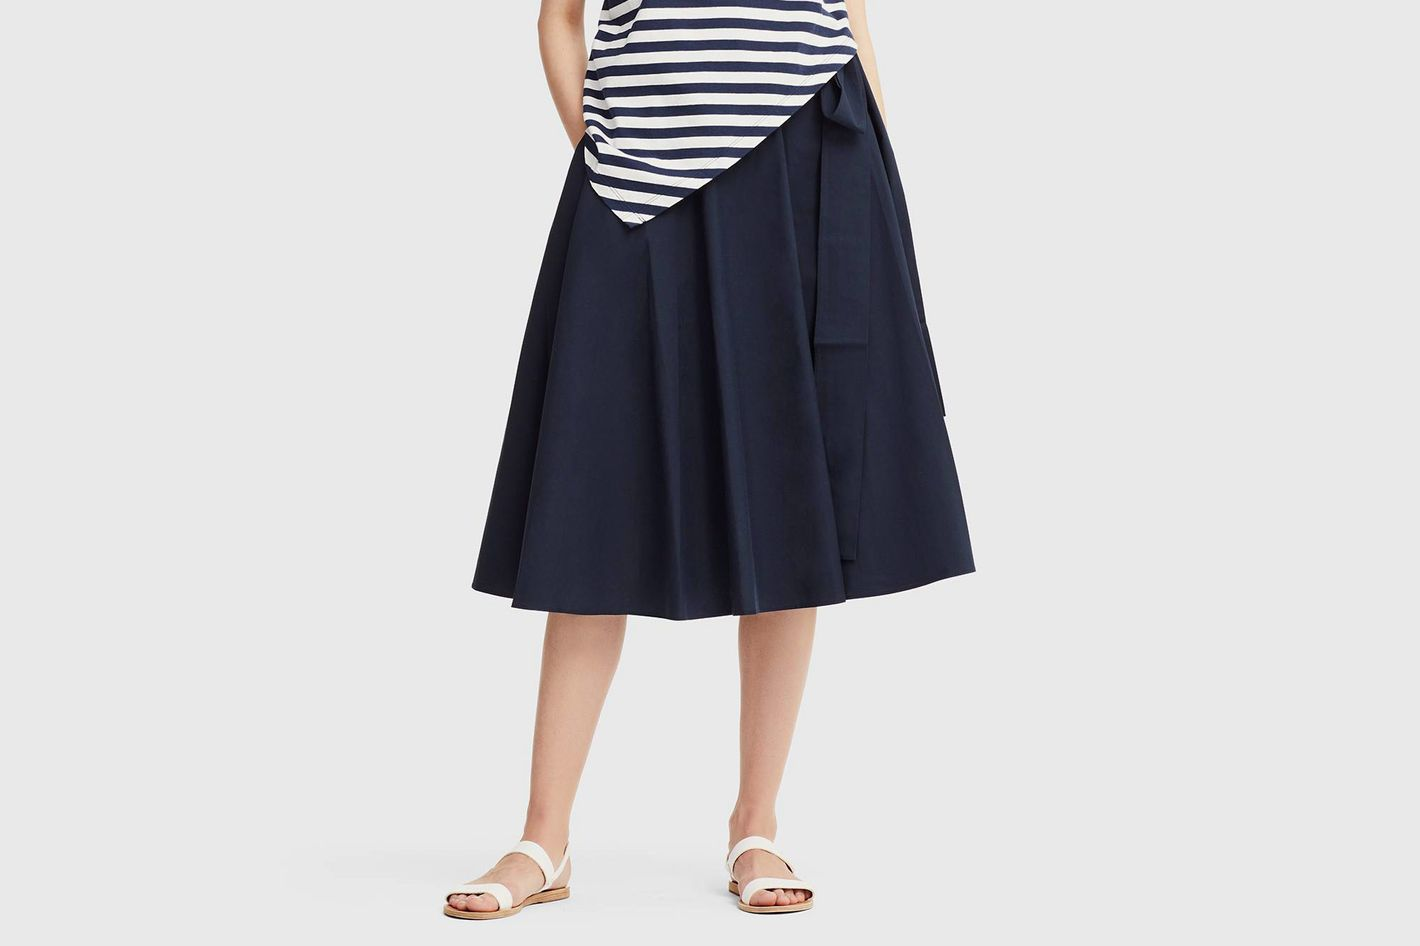 Uniqlo X JWA High-Waist Flare Skirt